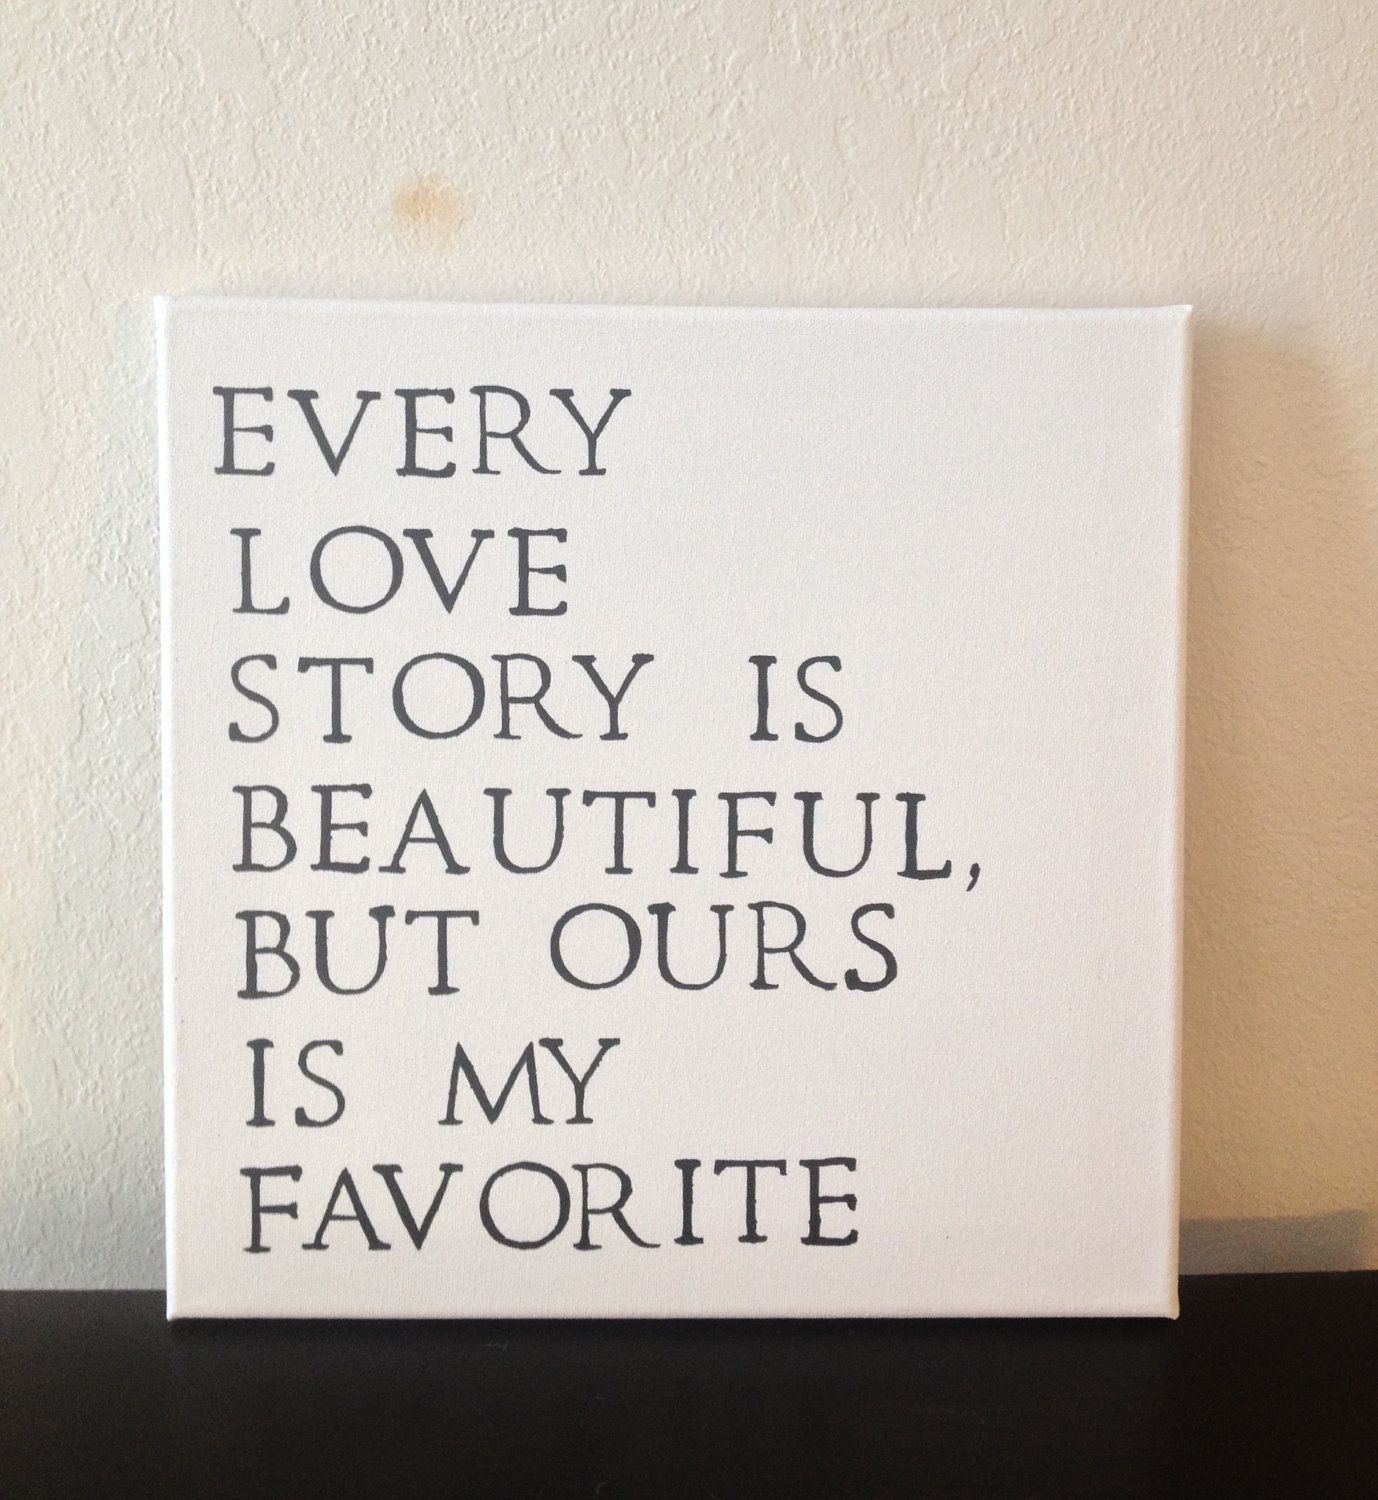 Love Quotes On Canvas Gorgeous 12X12 Quote Canvas  Every Love Story Is Beautiful But Ours Is My